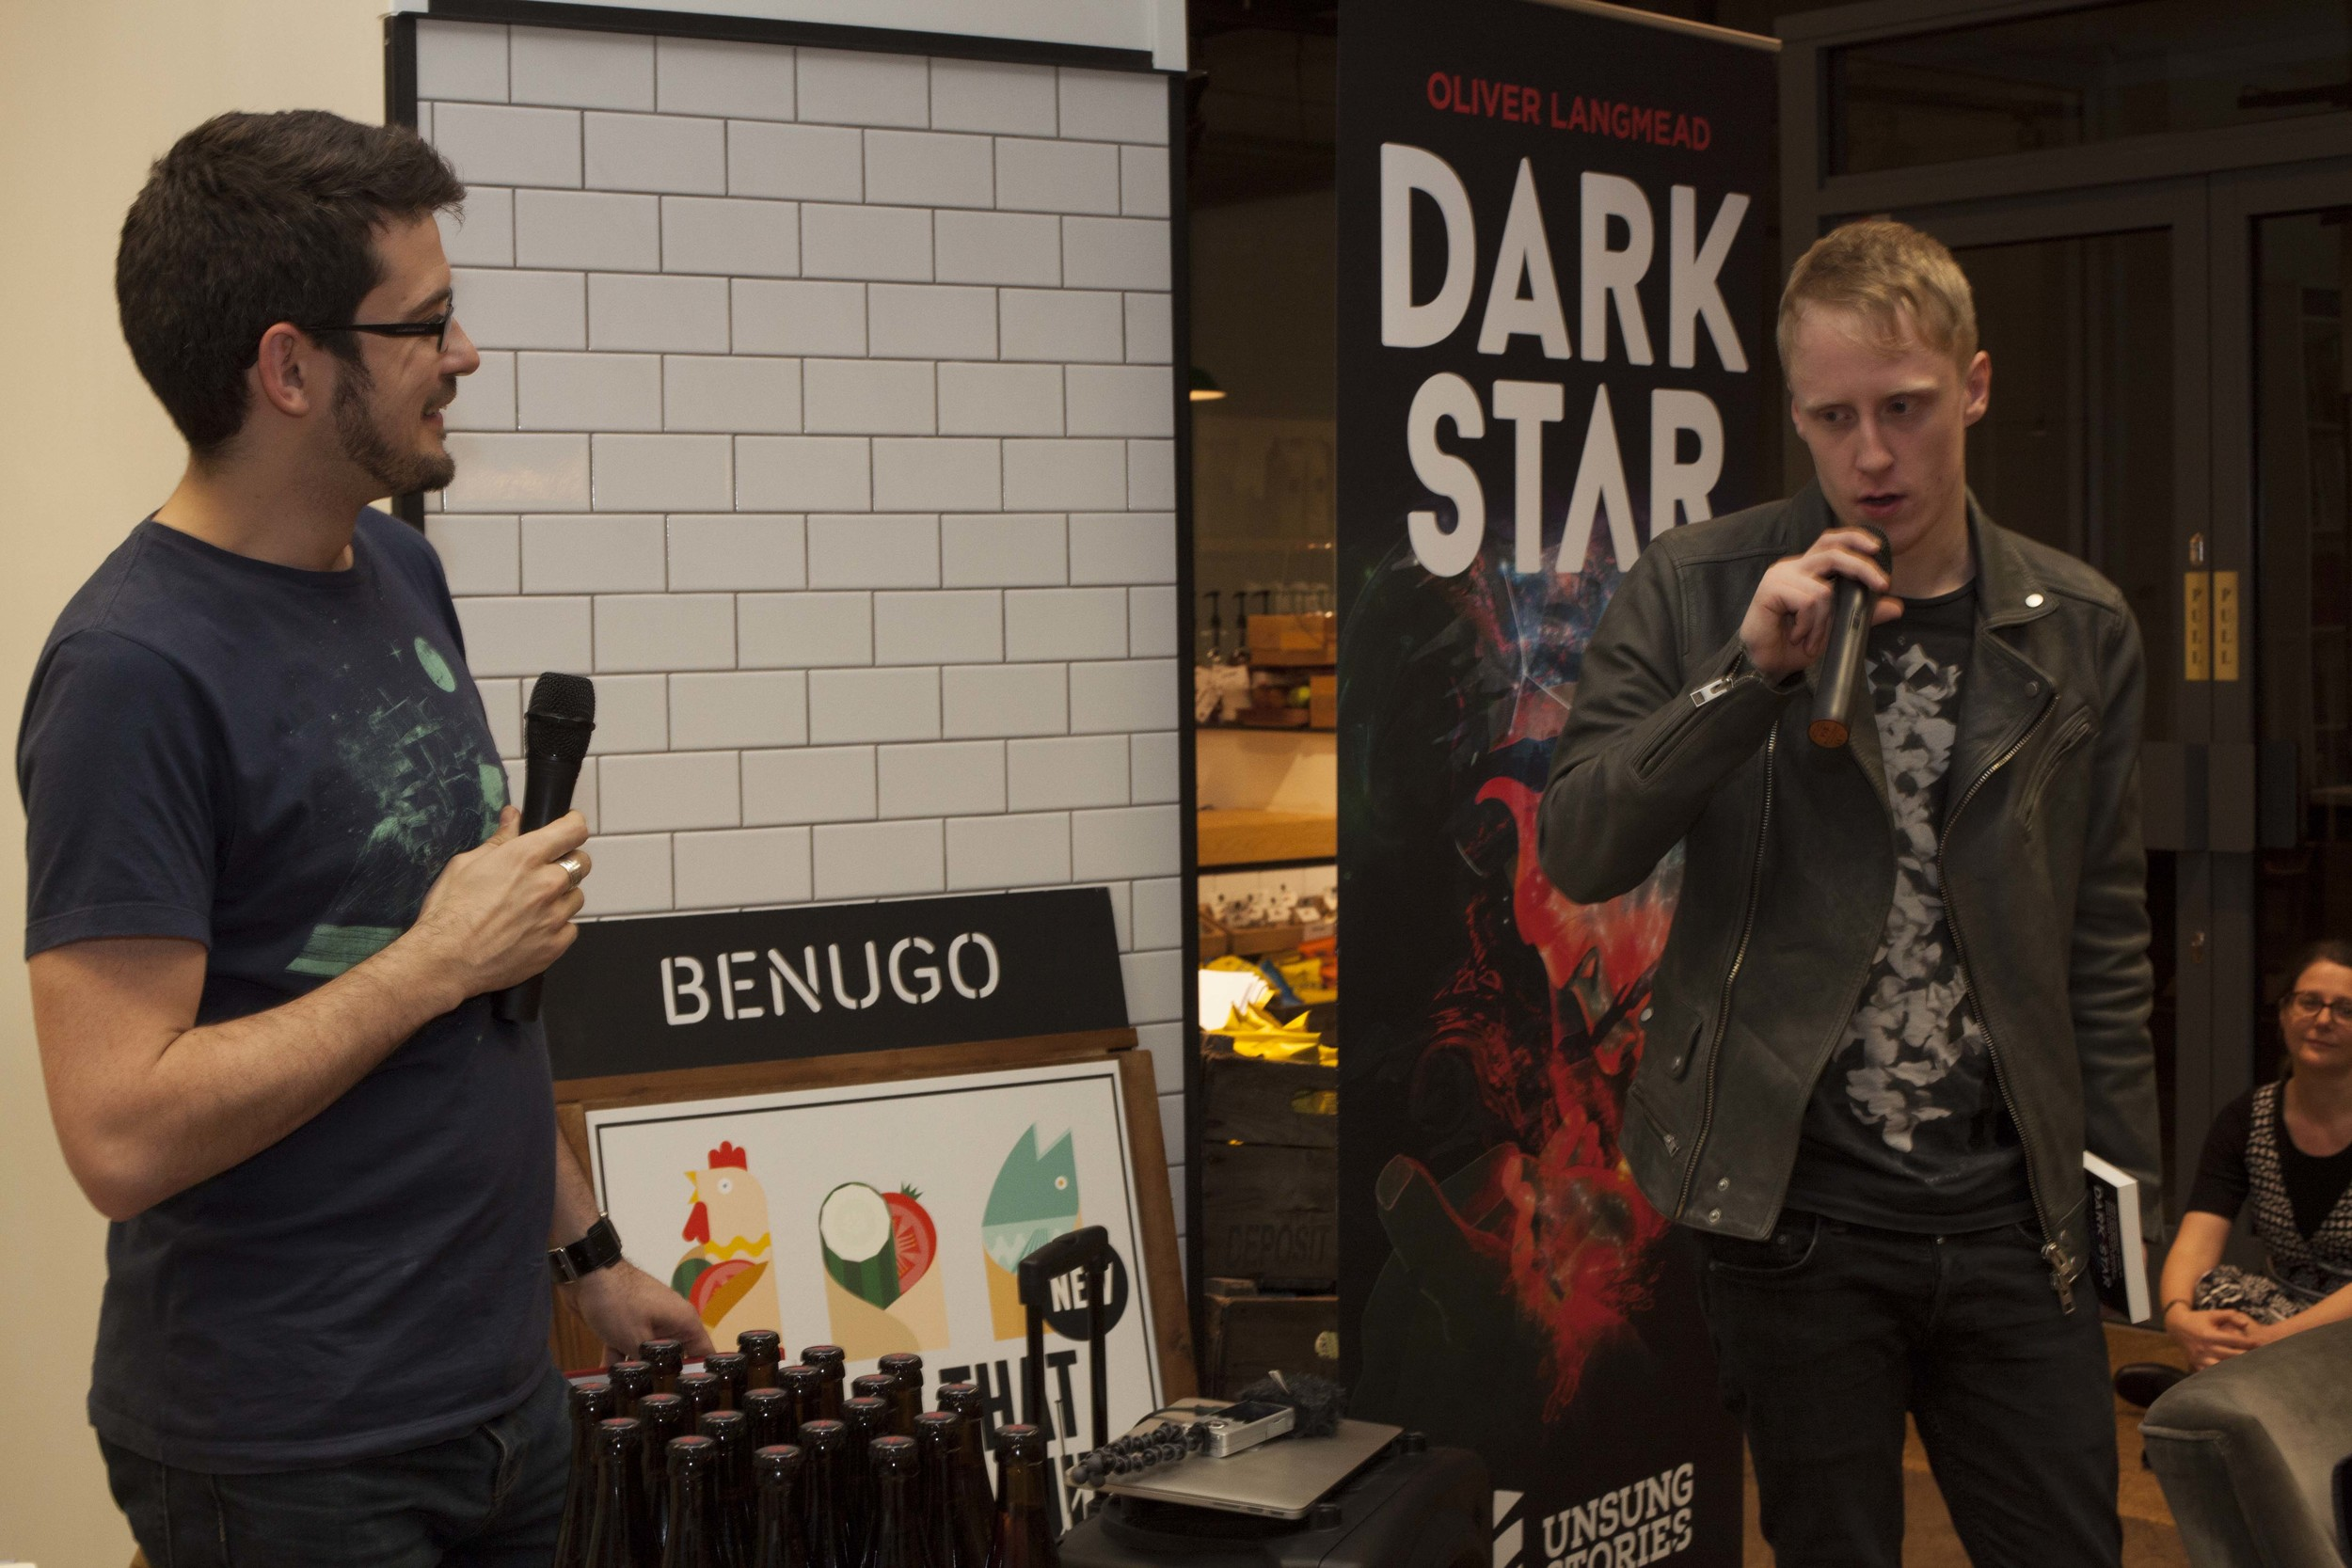 Oliver Langmead responds to a question from George Sandison of Unsung Stories at the official launch of Dark Star. Blackwells Holborn 20 March 2015.jpg